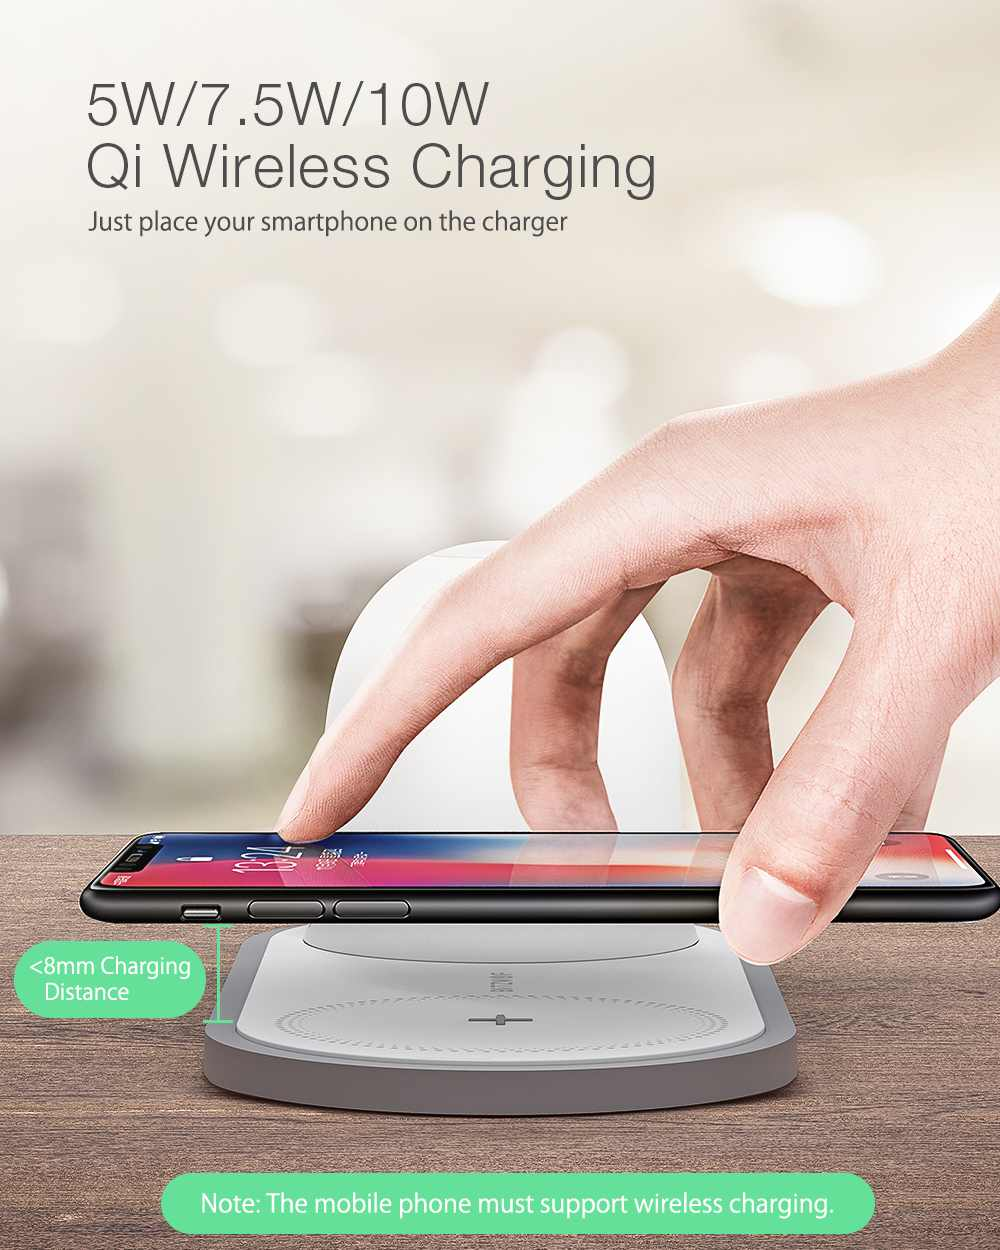 [QI Charge] BlitzWolf BW-LT26 10W Qi Wireless Charger Type-C Charging Magnetic Detachable Lamp with 2700k-5000k LED Night Light